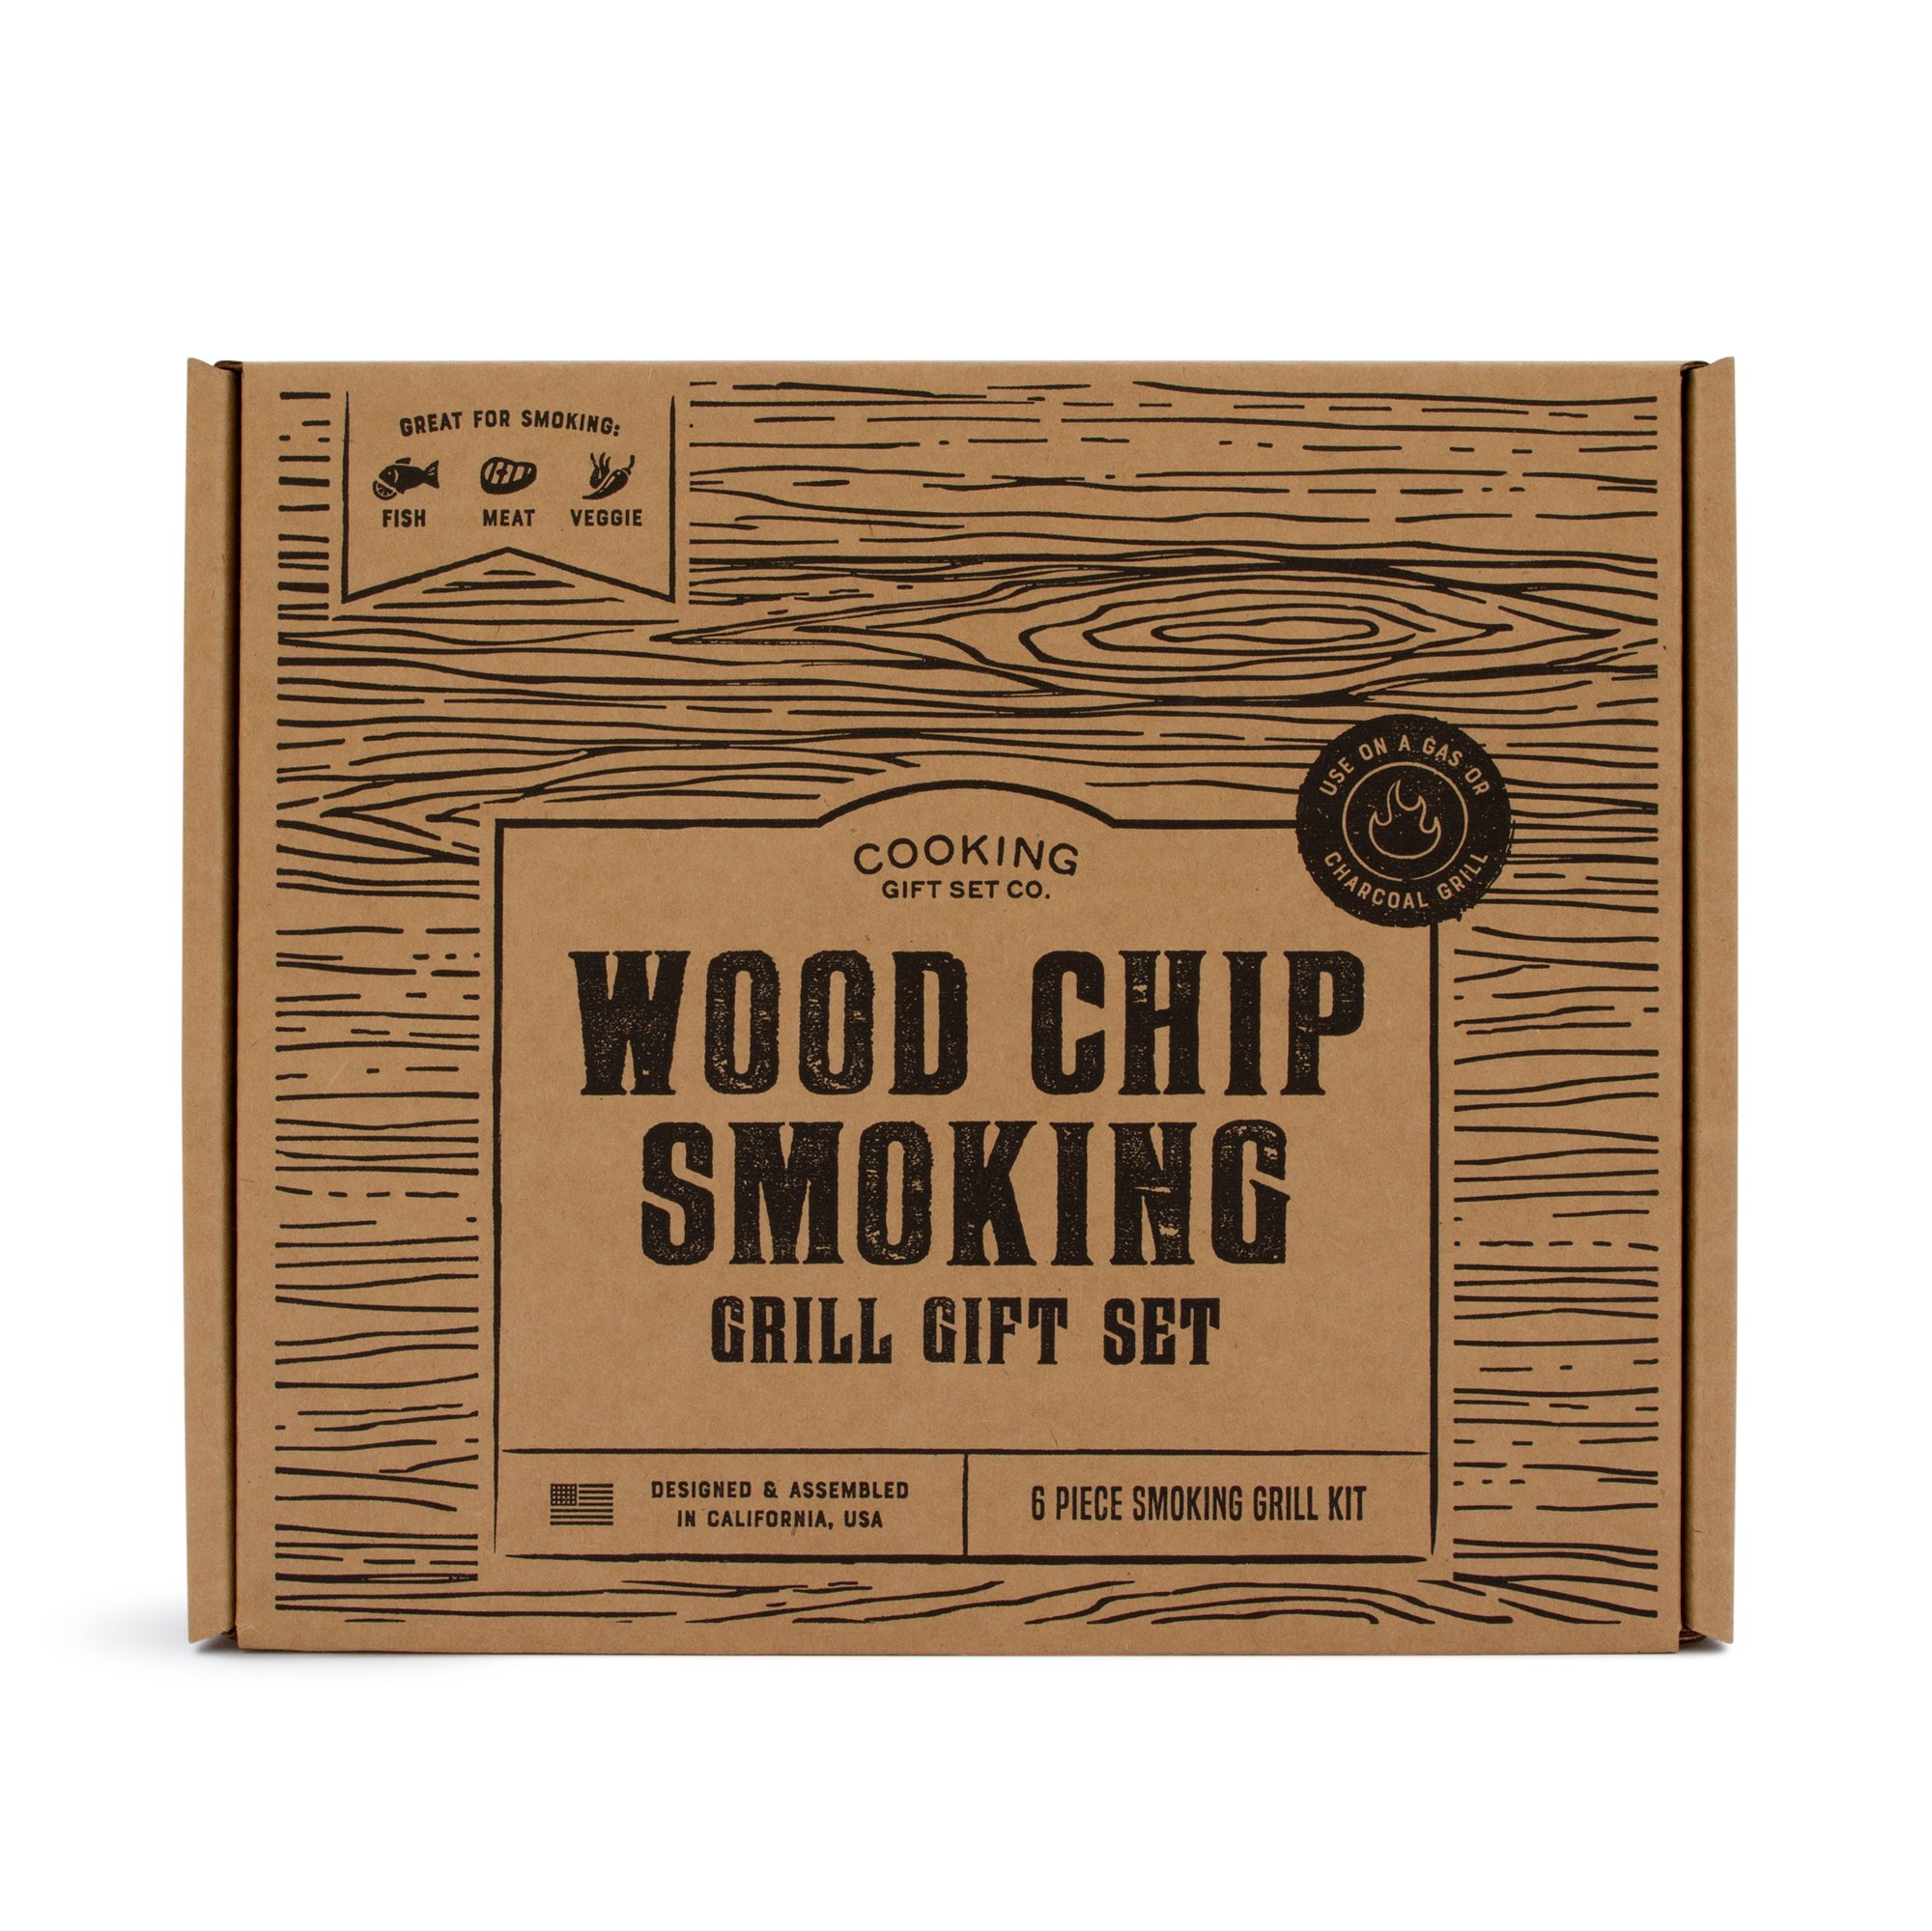 Details about Cooking Gift Set | BBQ Smoker Wood Chip Grill Set | Perfect Gift for Guys |  sc 1 st  eBay & Cooking Gift Set | BBQ Smoker Wood Chip Grill Set | Perfect Gift for ...